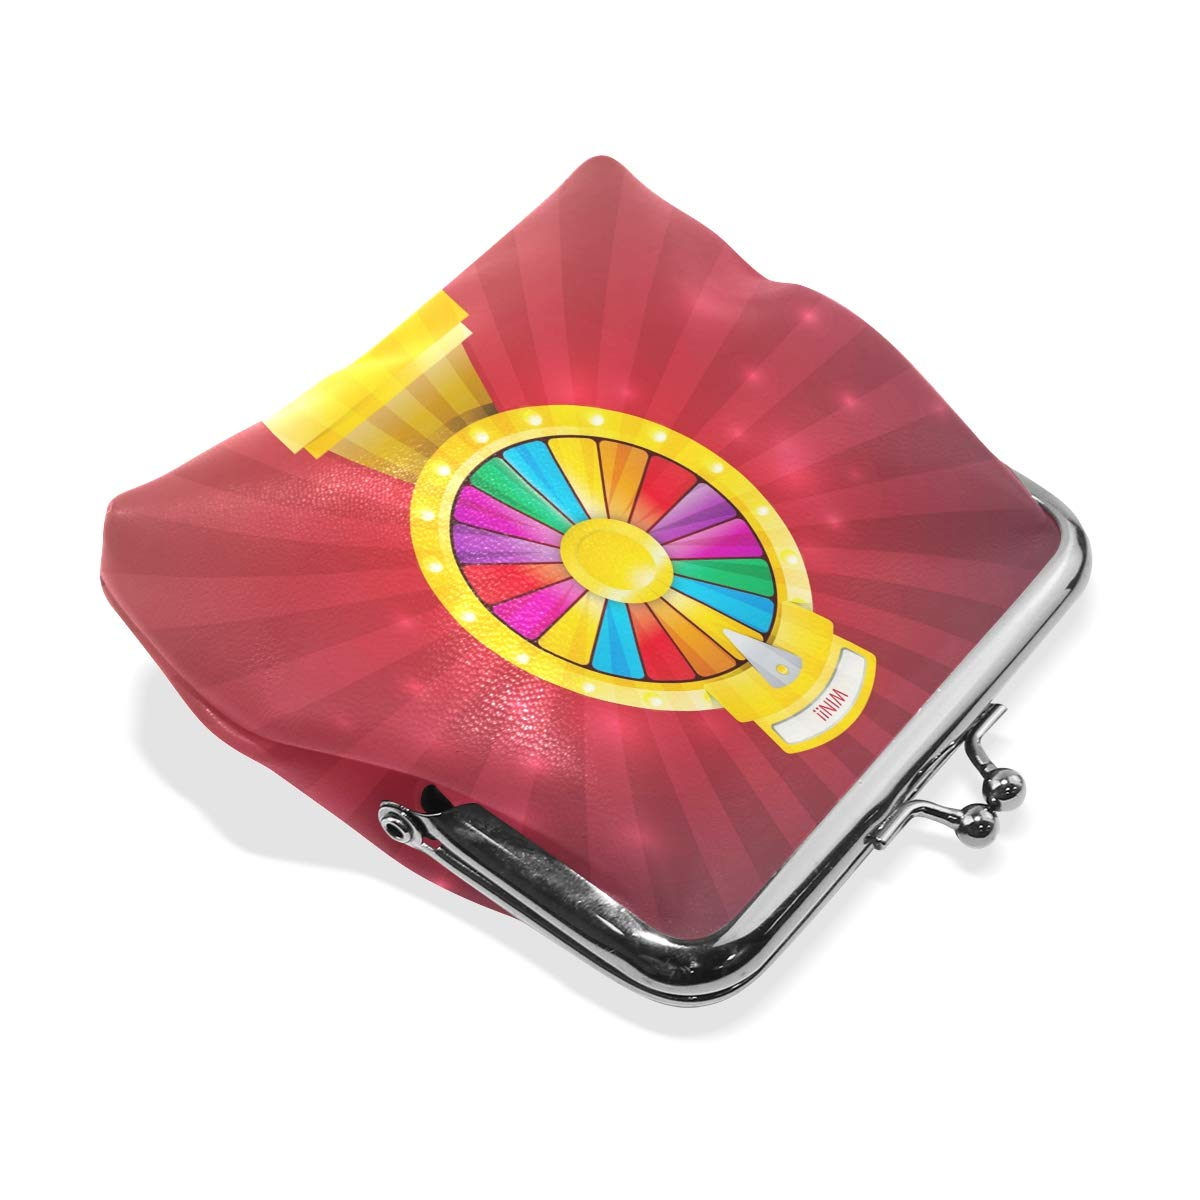 LALATOP Spinning Wheel Fortune Womens Coin Pouch Purse wallet Card Holder Clutch Handbag